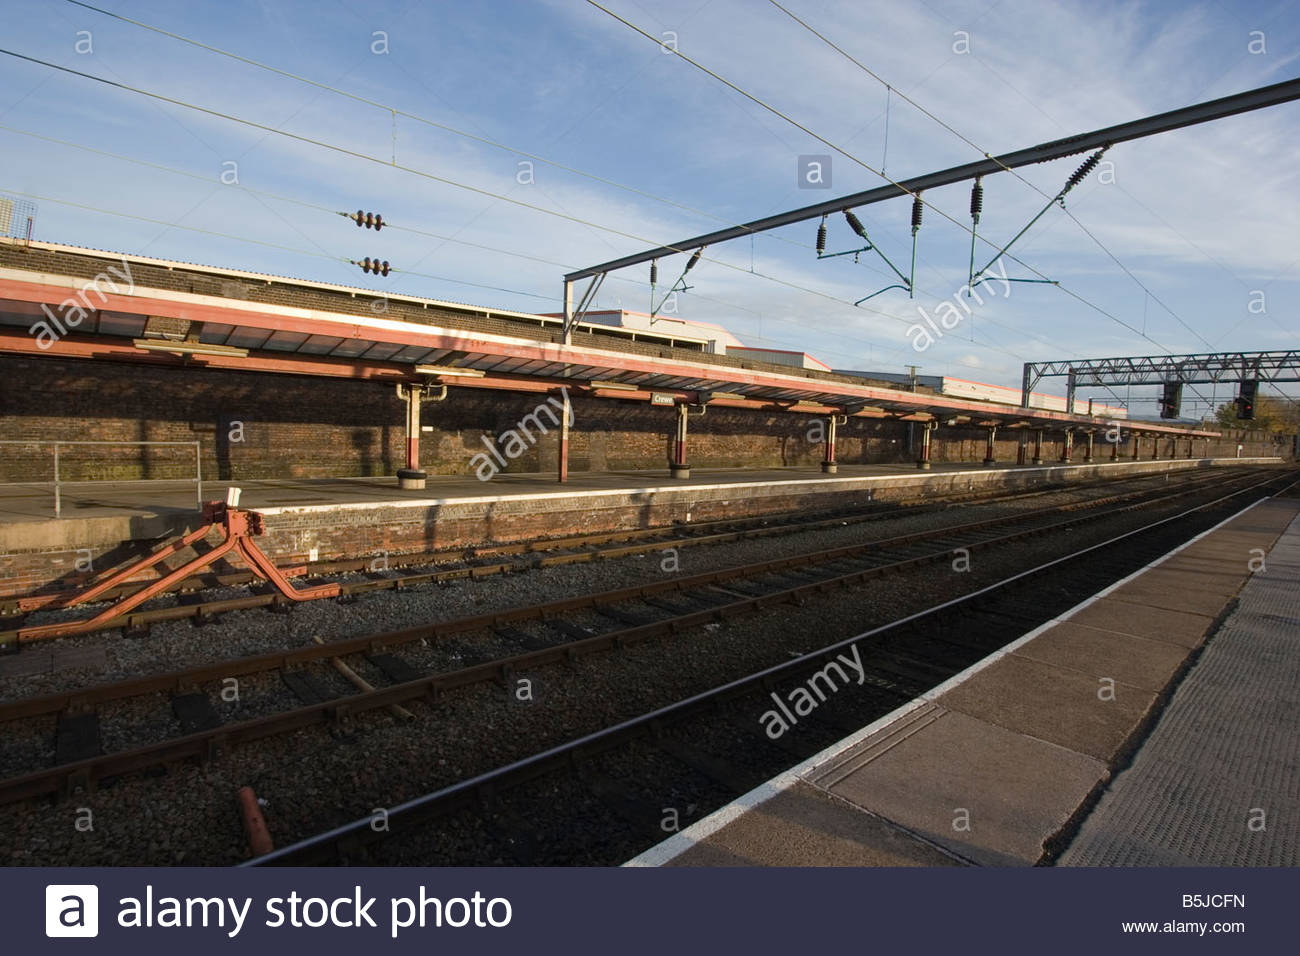 England Crewe railway station Deserted Platforms a major rail interchange and gateway to the North West of England - Stock Image